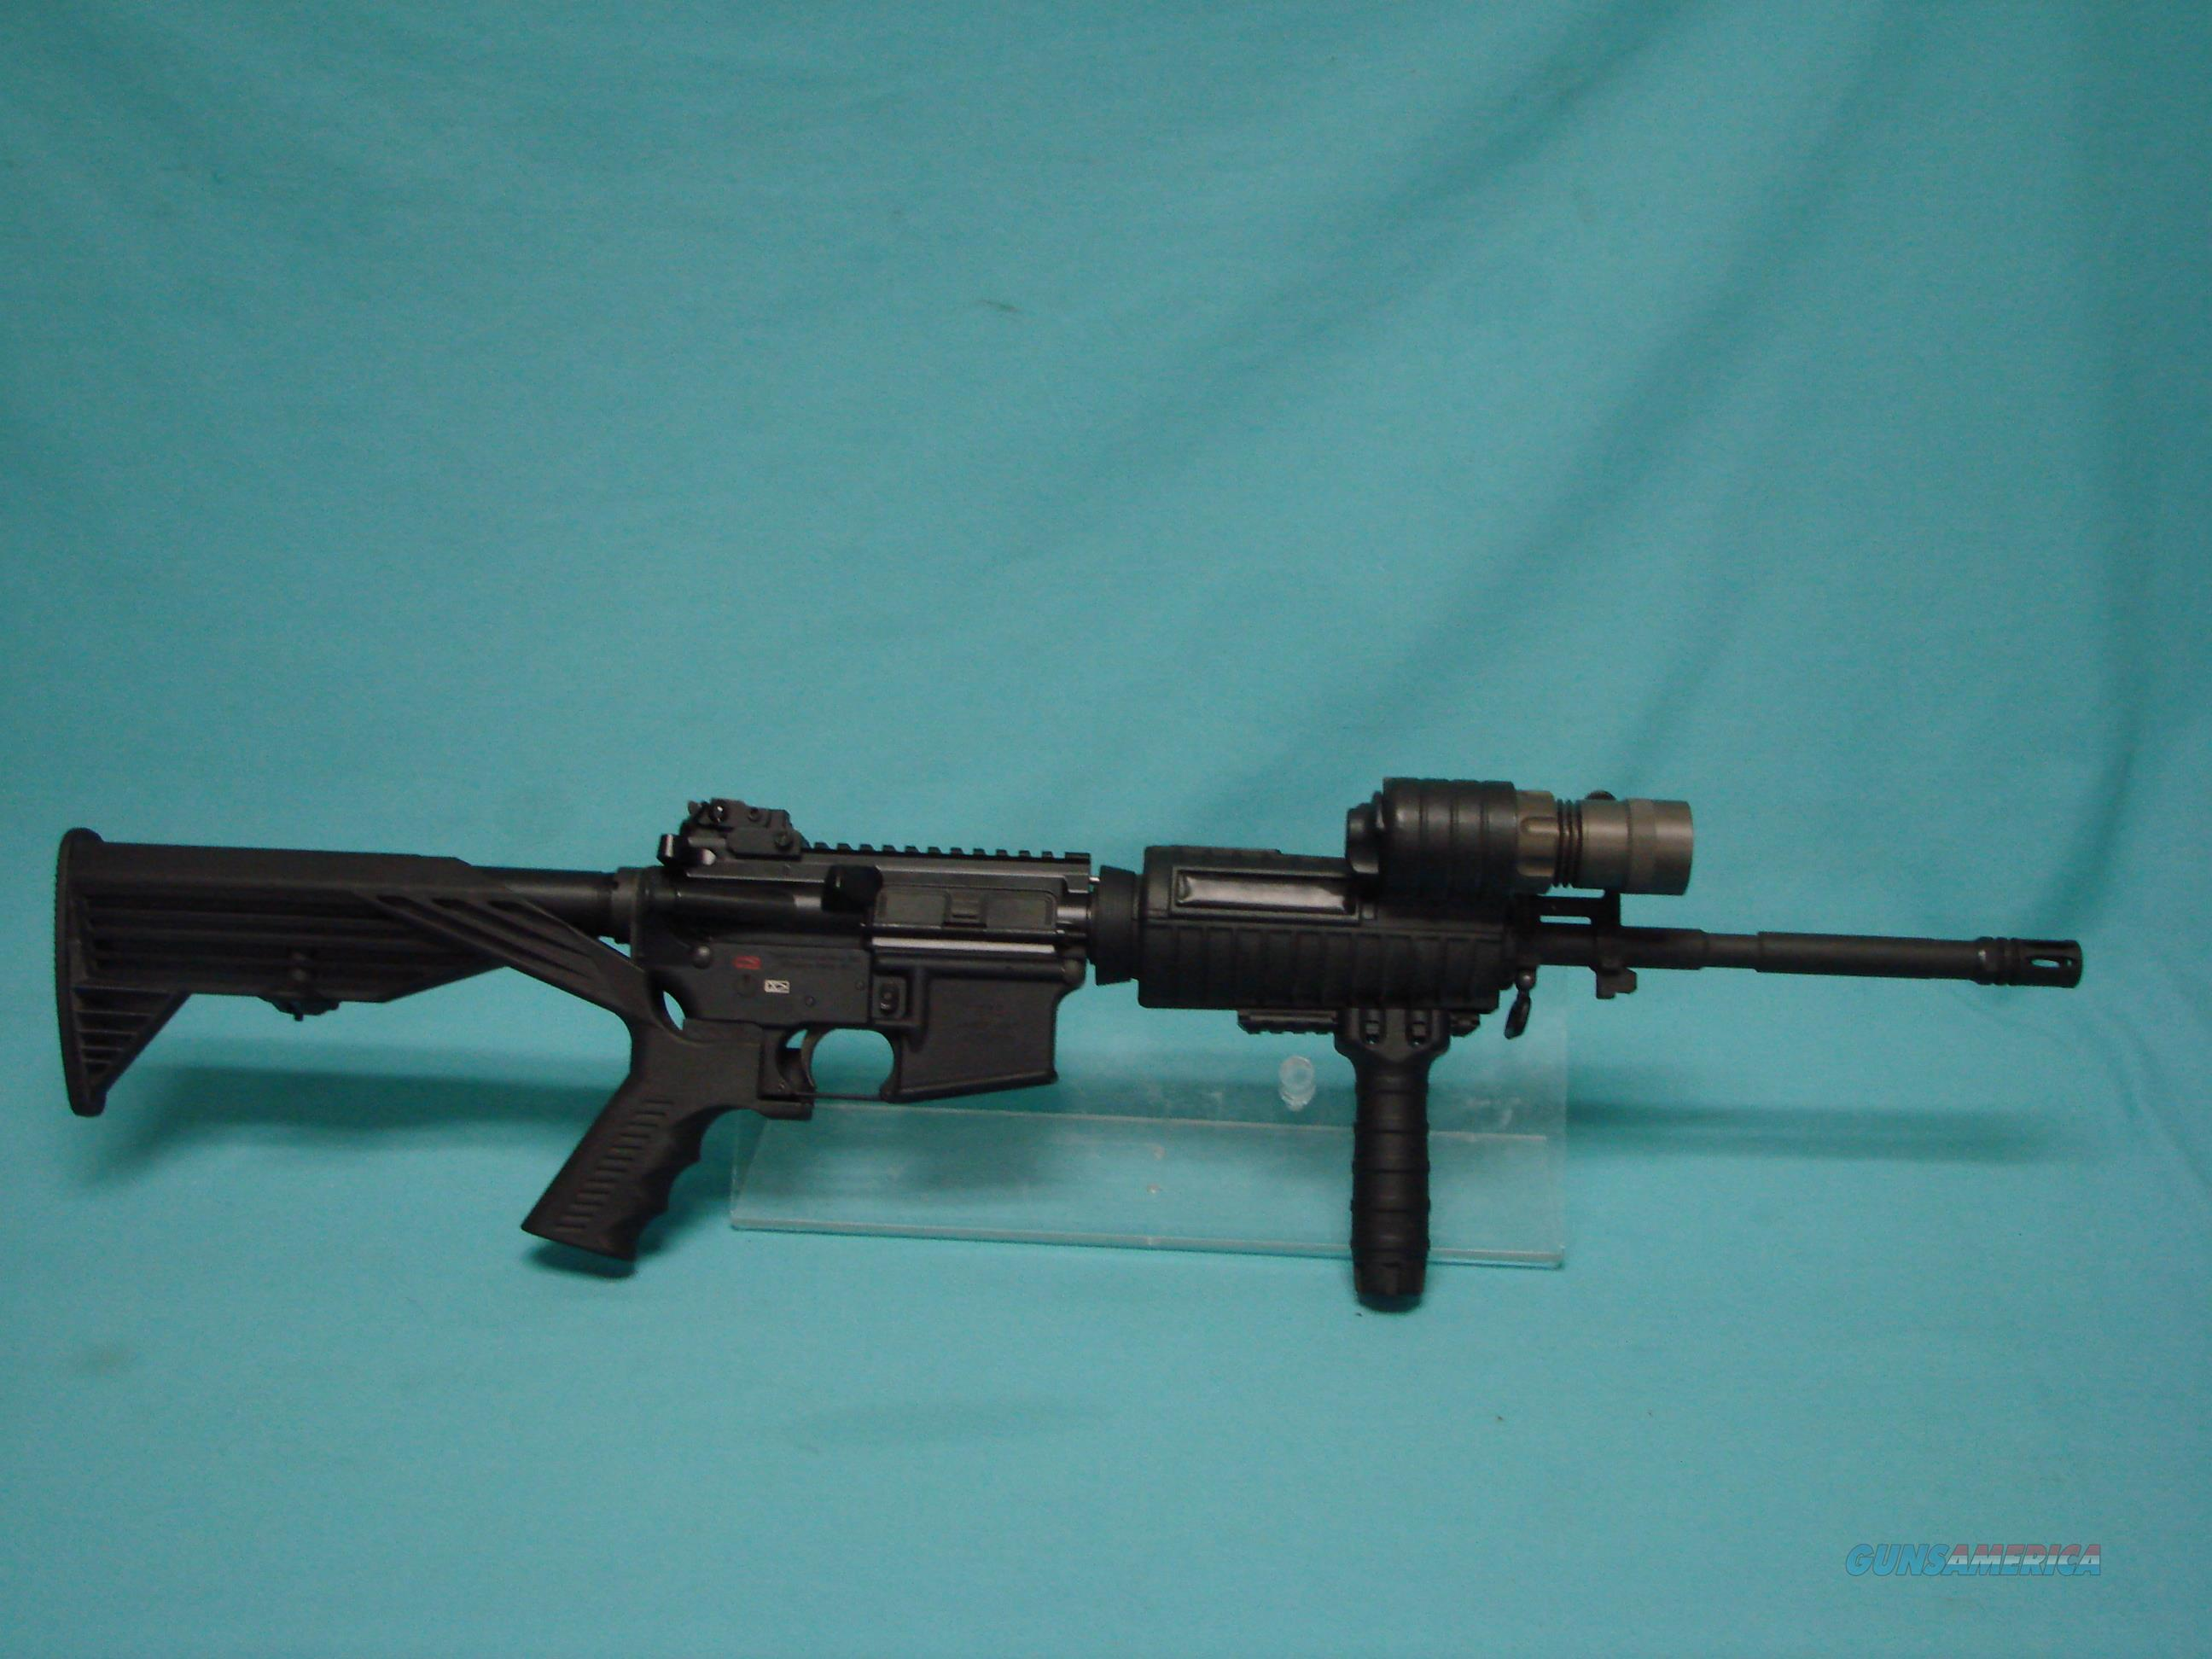 Tactical Innovations T15 w/Slidefire  Guns > Rifles > AR-15 Rifles - Small Manufacturers > Complete Rifle